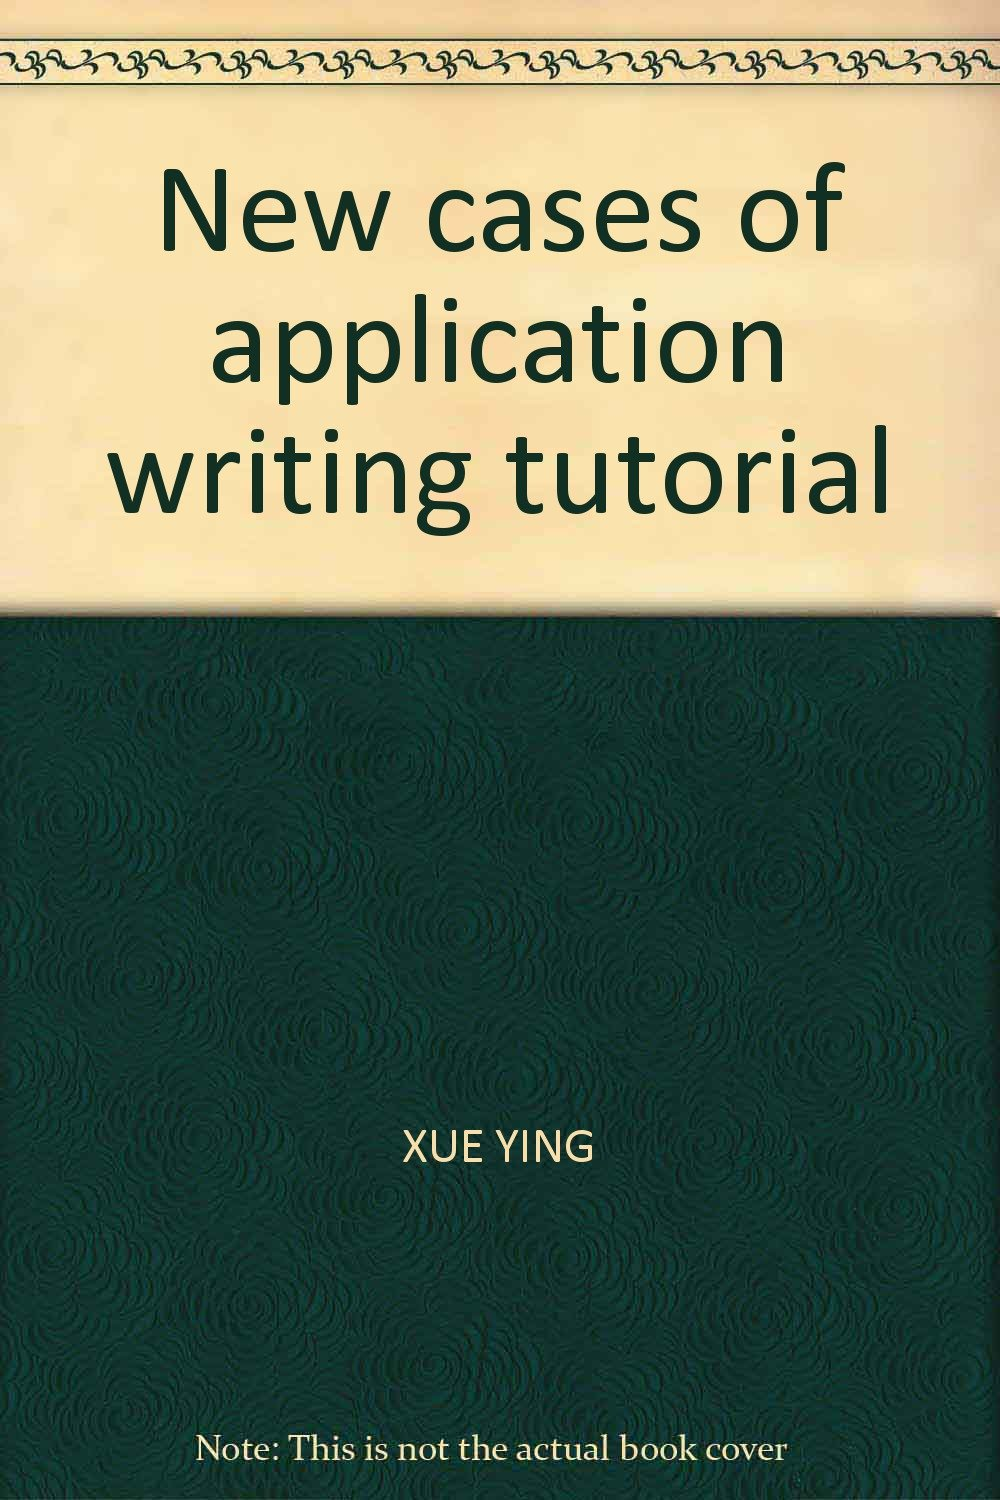 New cases of application writing tutorial PDF